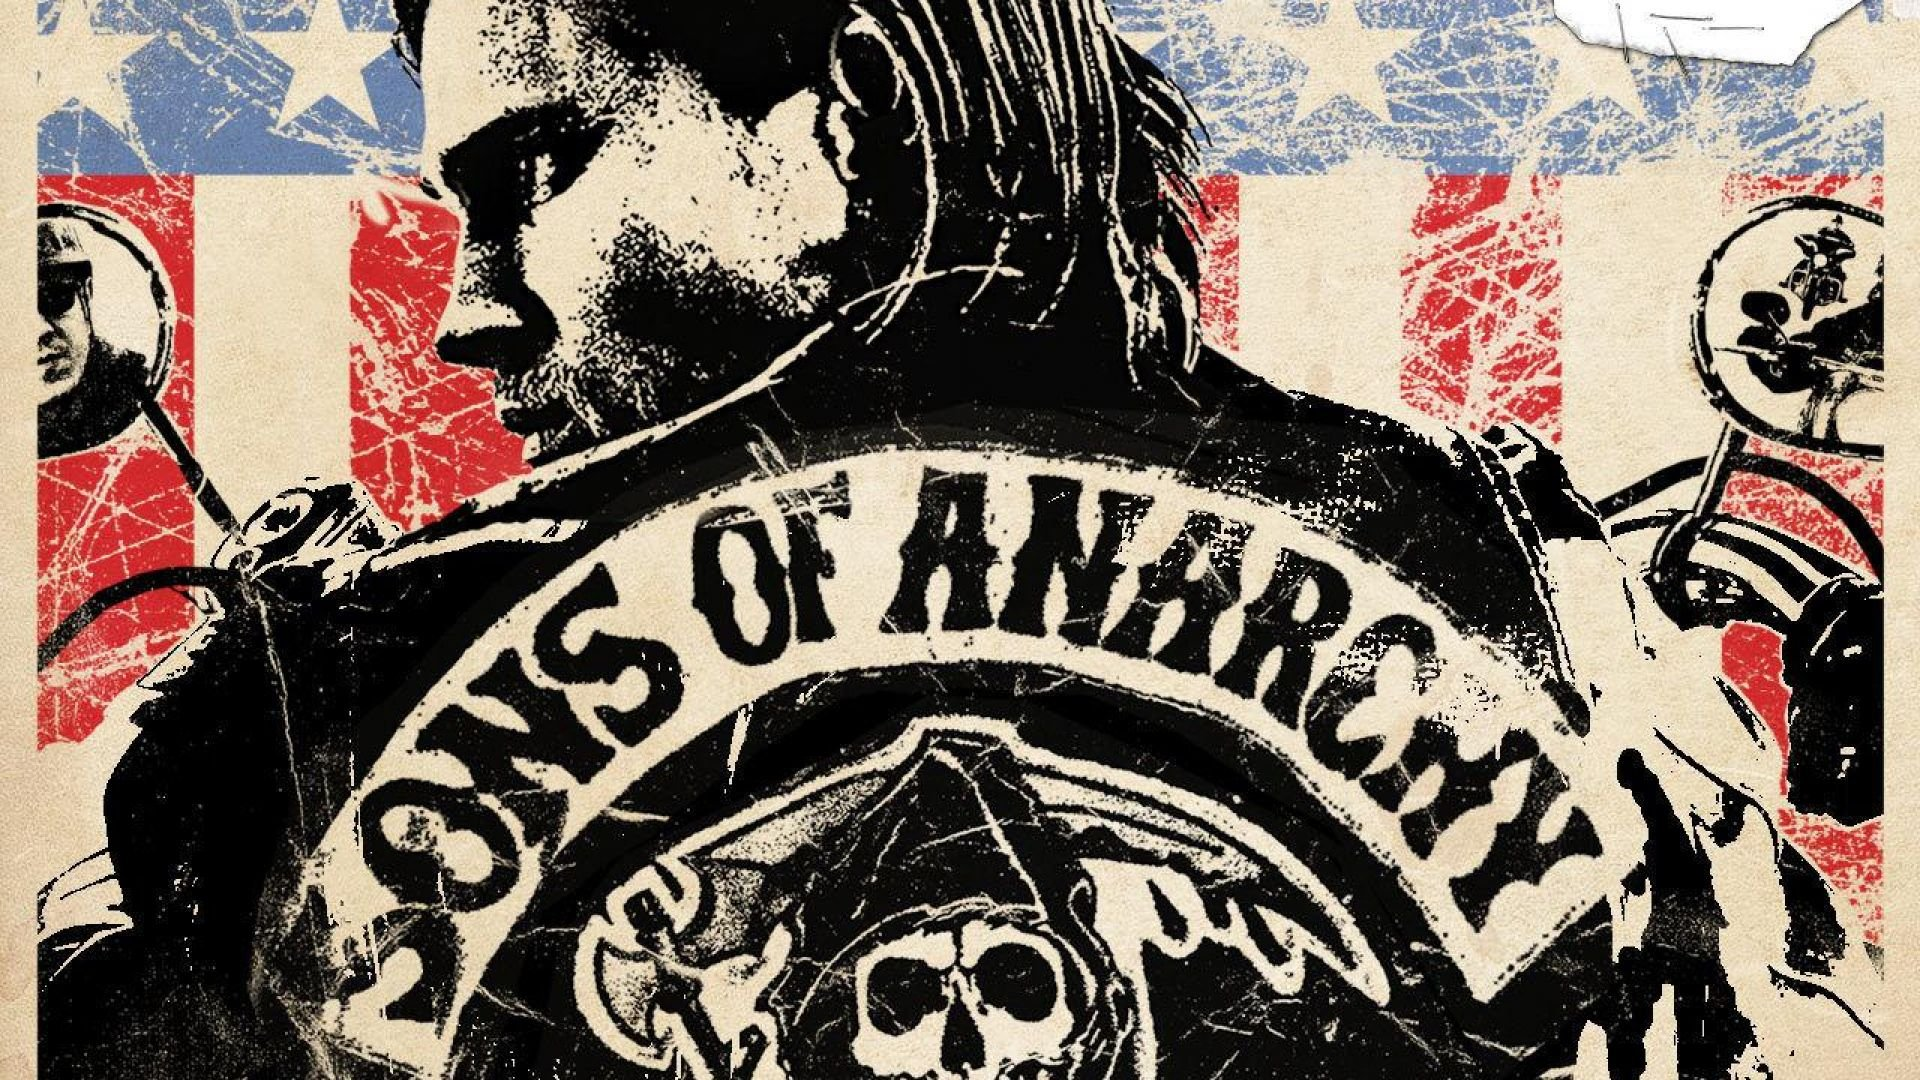 Free Download Opie Winston Sons Of Anarchy Wallpaper Walldevil